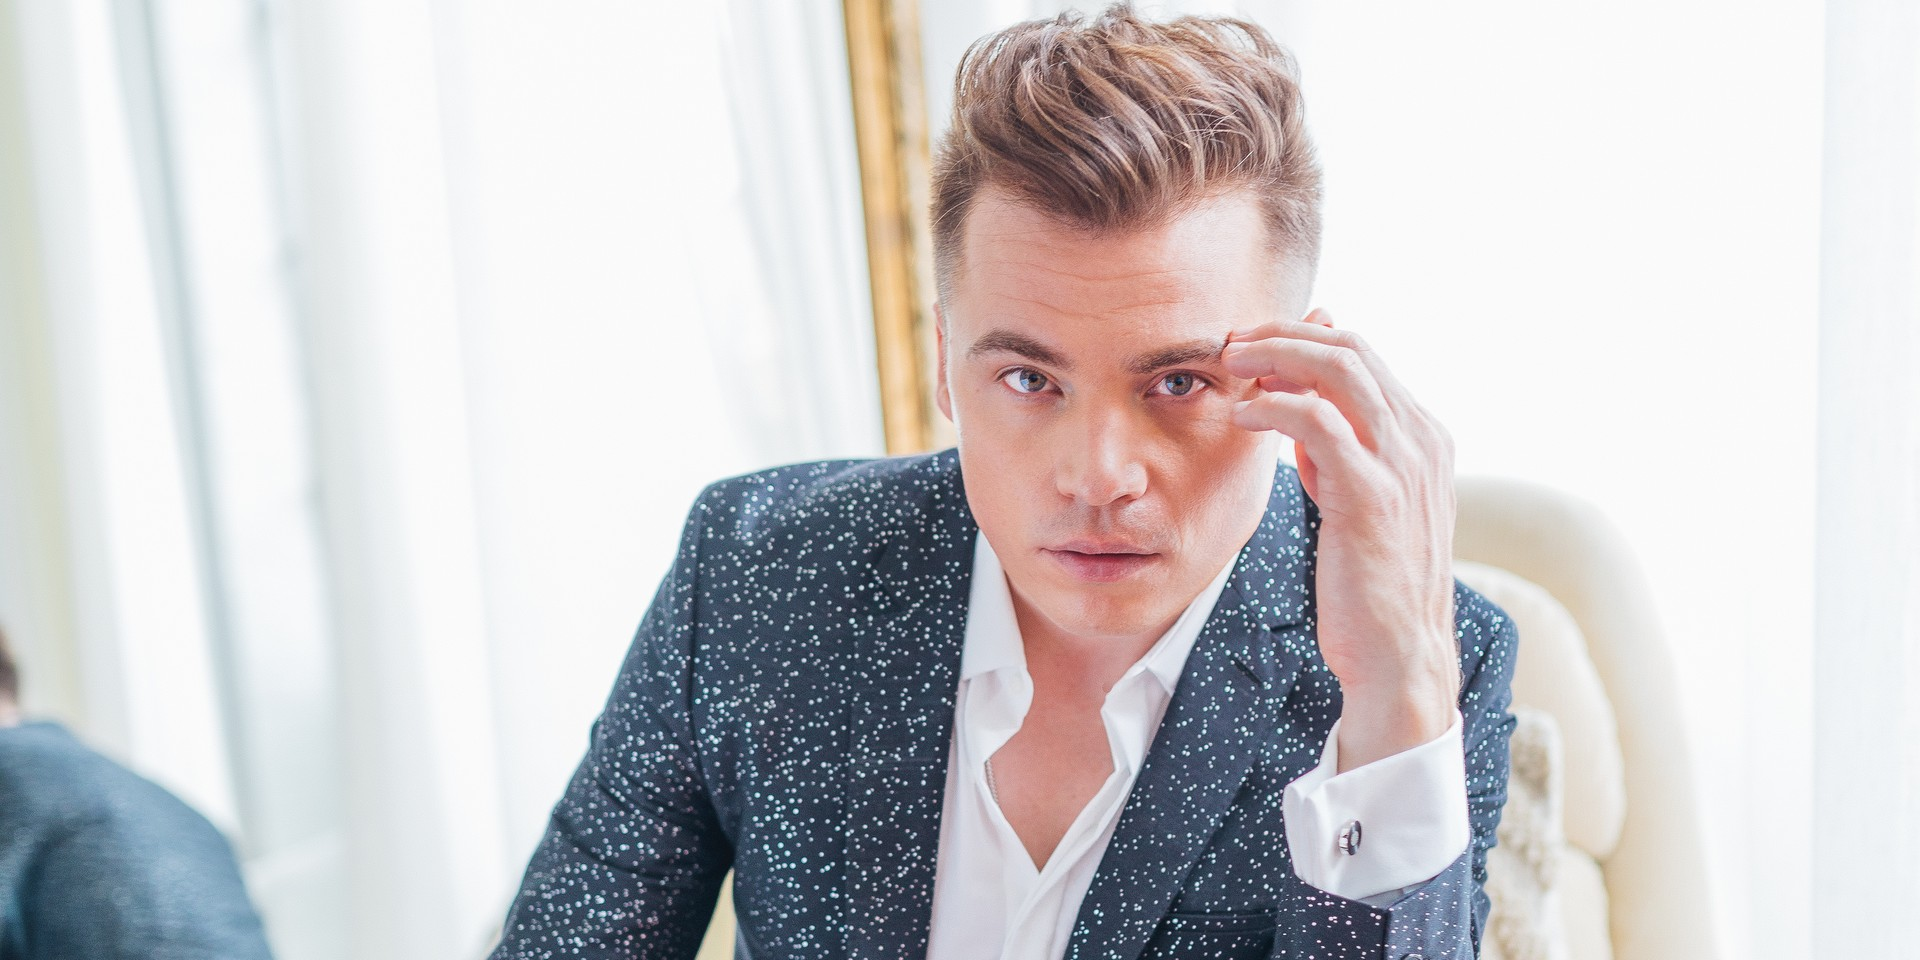 Shawn Hook talks about his journey from trombone player to pop stardom, wanting to work with Post Malone, Billie Eilish, and more